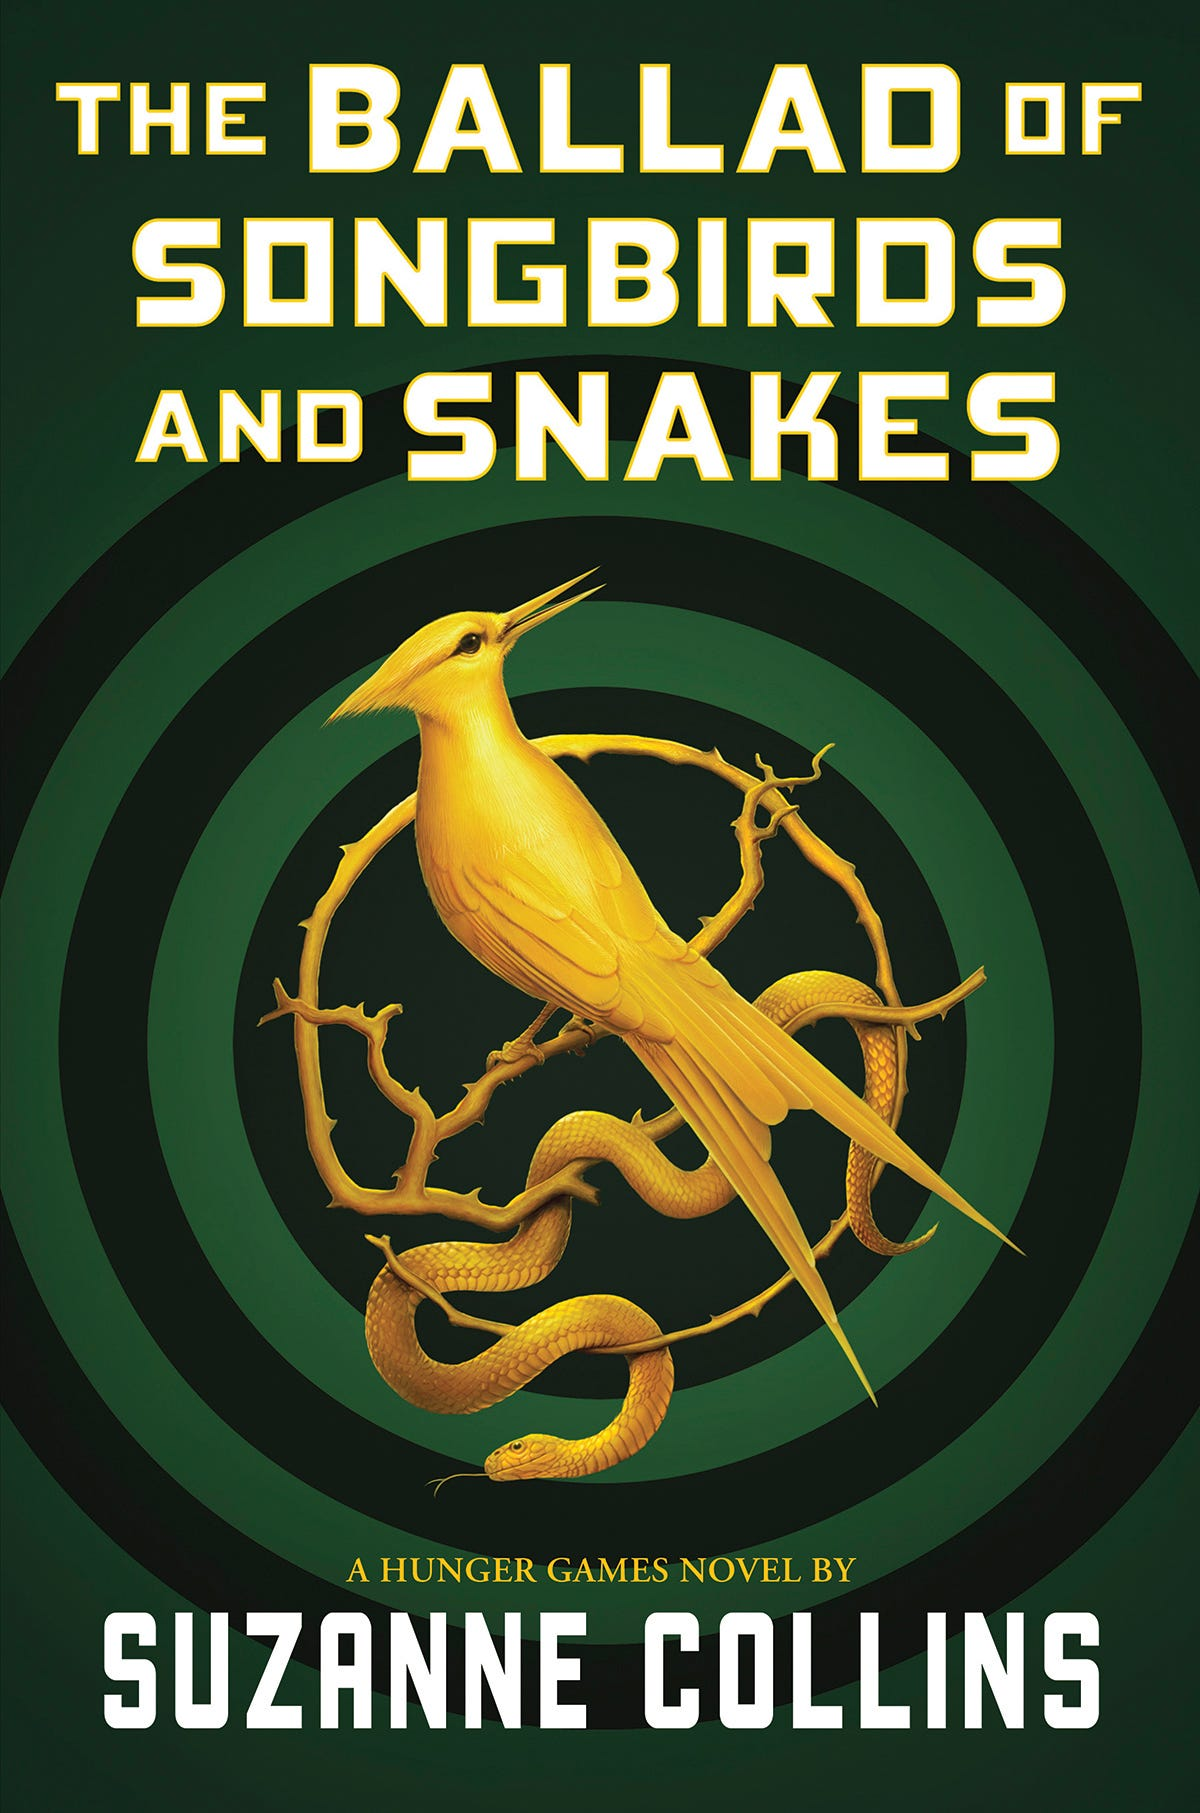 Hunger Games': All about the new 'Ballad of Songbirds and Snakes'